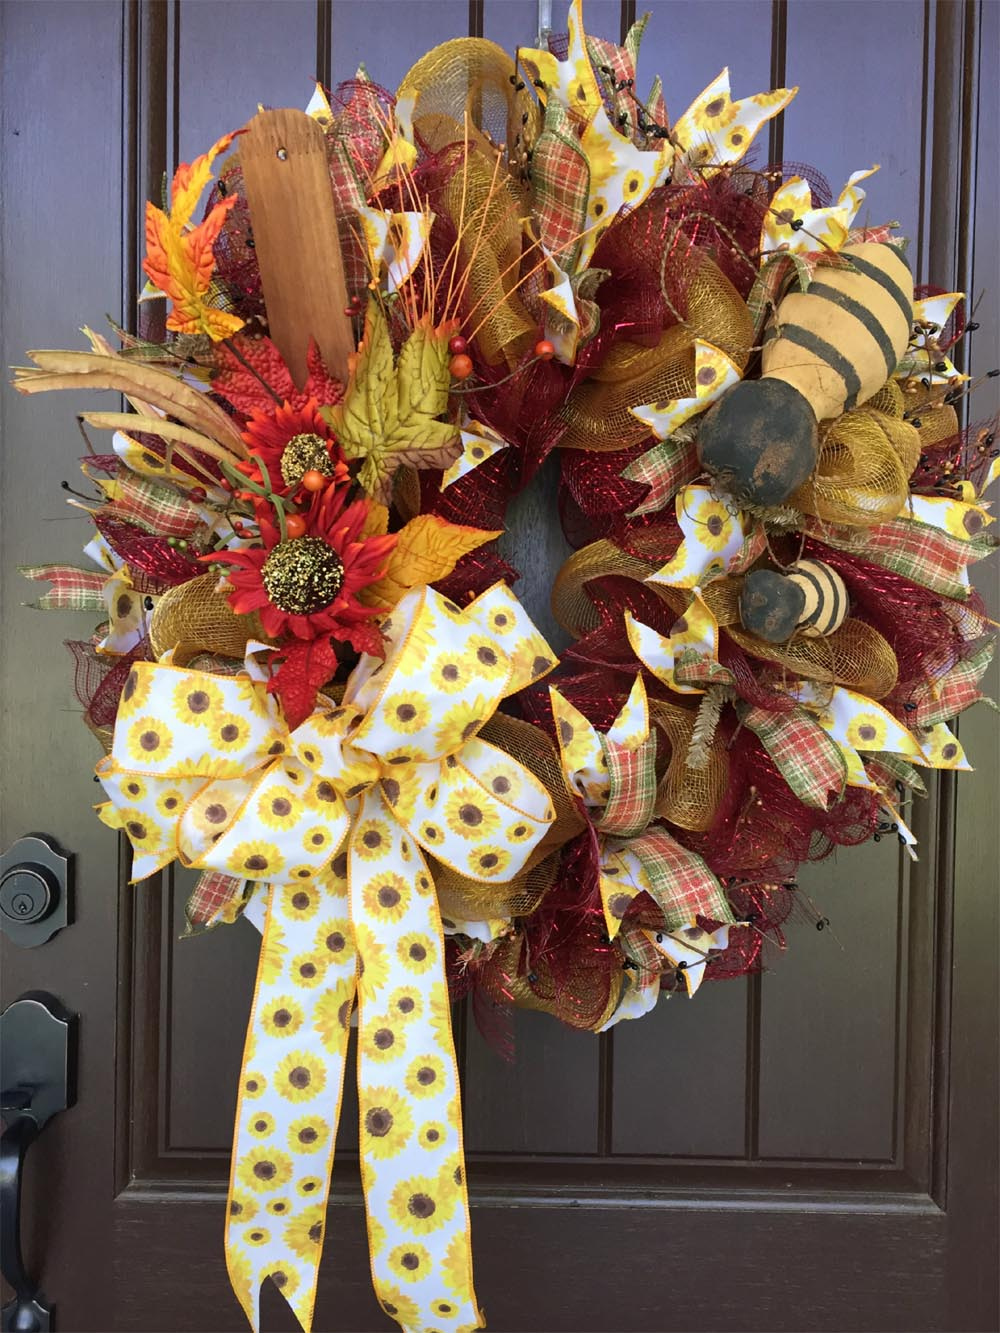 2017 Autumn Wreath with Bees Tutorial